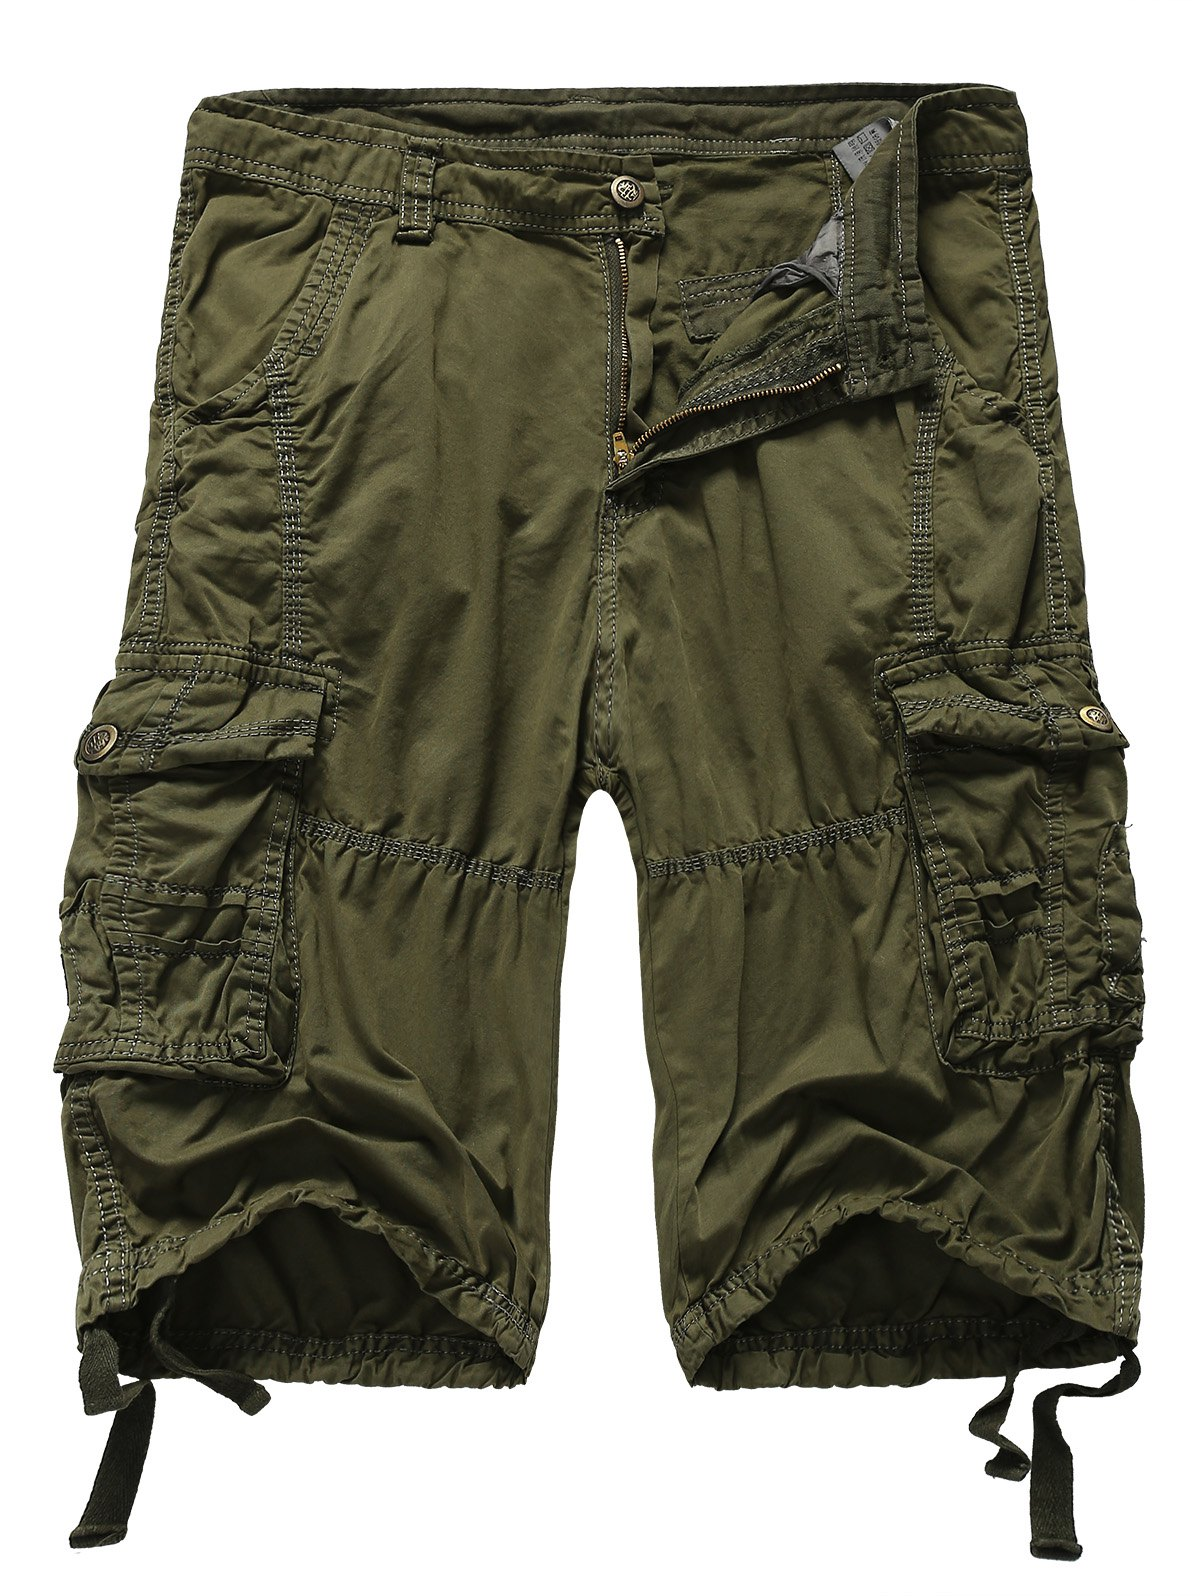 Straight Leg Zipper Fly Pockets Embellished Men's Shorts - ARMY GREEN 3XL